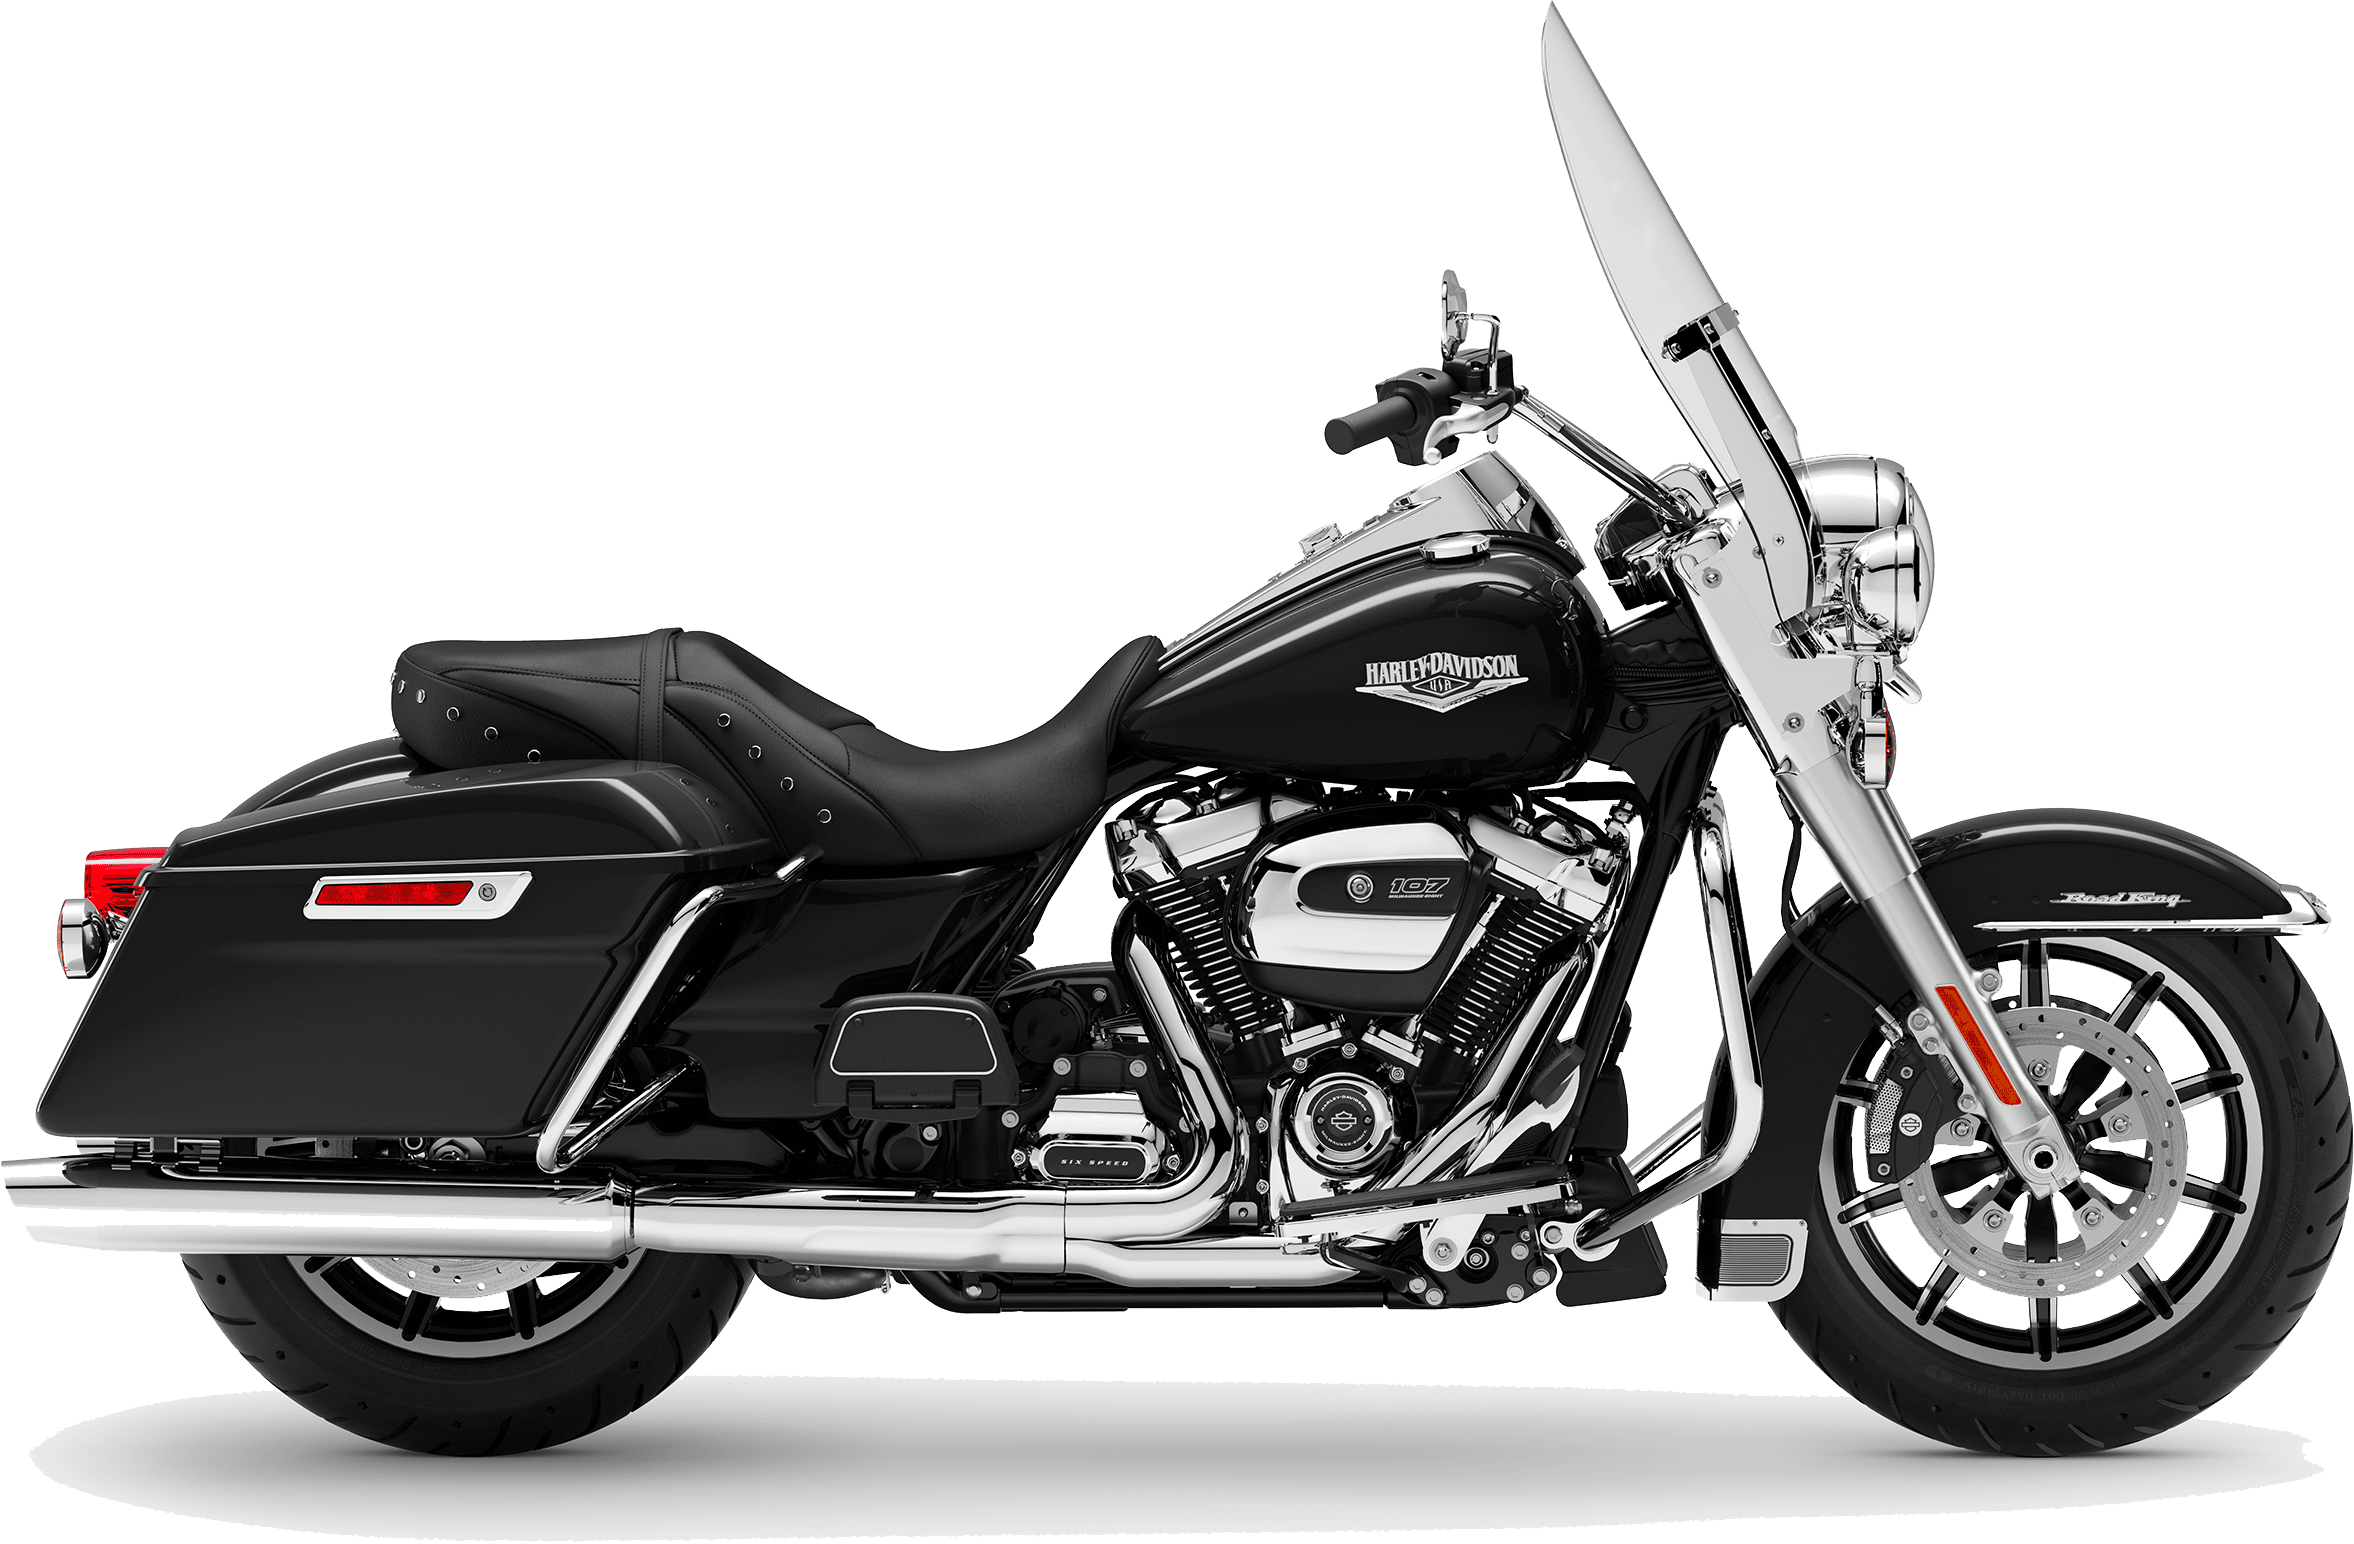 2019 Harley-Davidson H-D Touring Road King Vivid Black